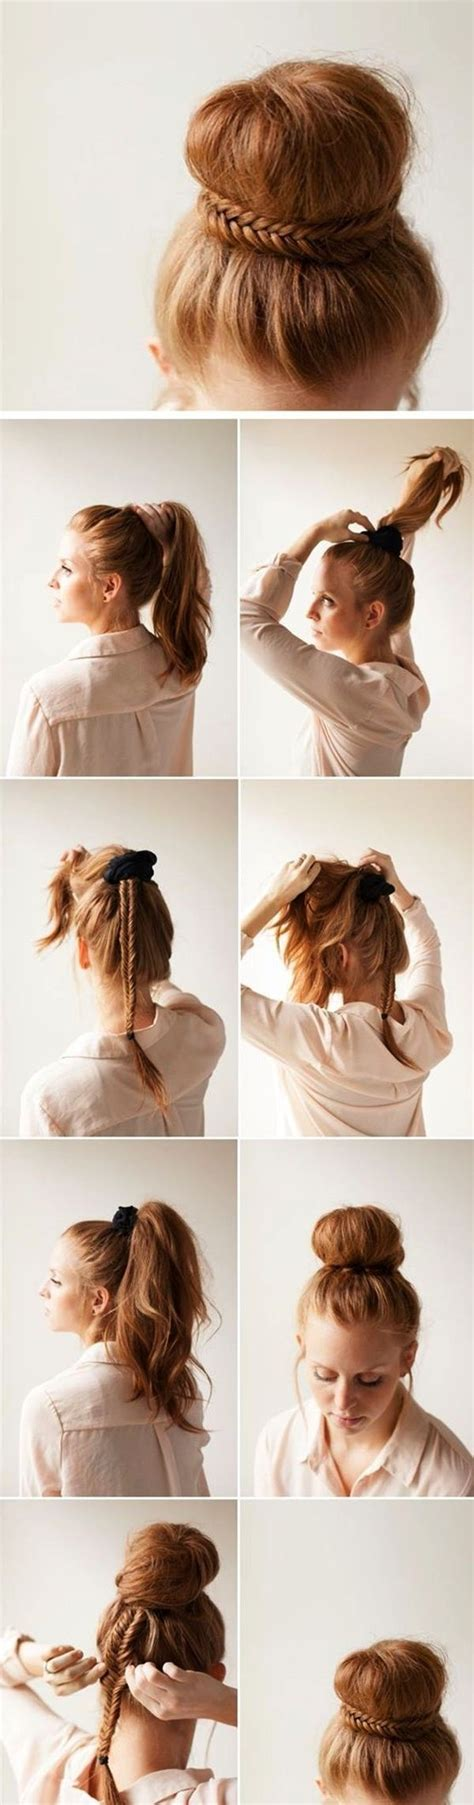 15 easy step by step hairstyles for long hair hair style 15 easy step by step hairstyles for long hair the